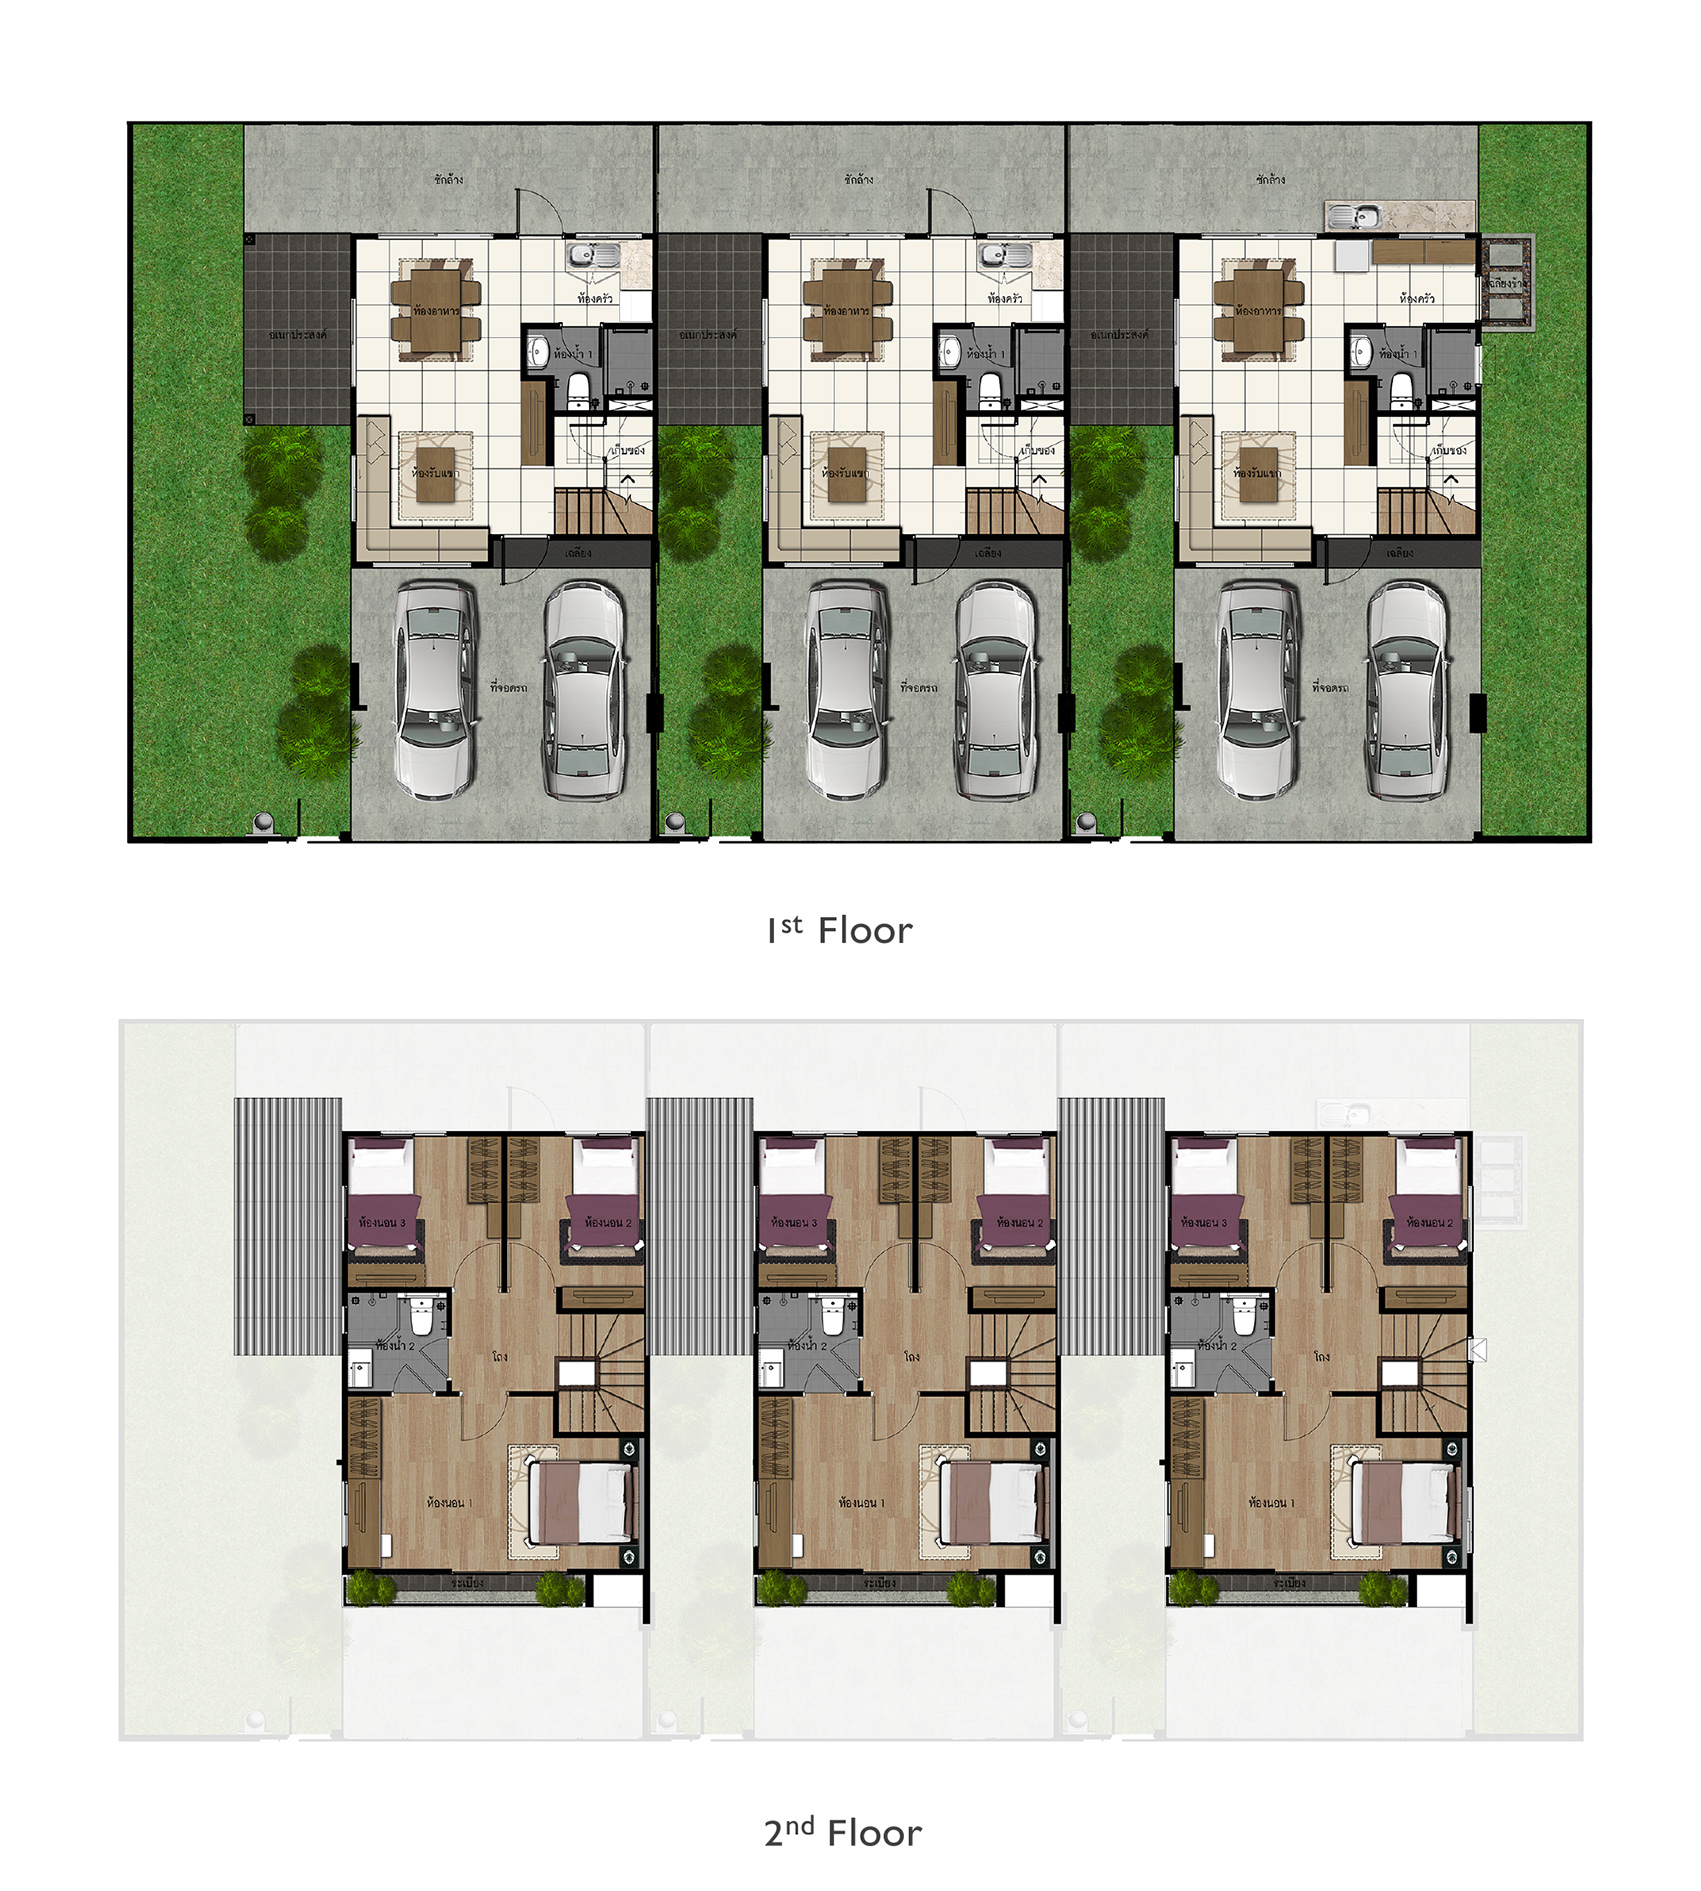 TrendVector_-_Plan_-_The_Plant_Rangsit_-_Khlong_2_-_home_-_Single-Detached_House_-_house